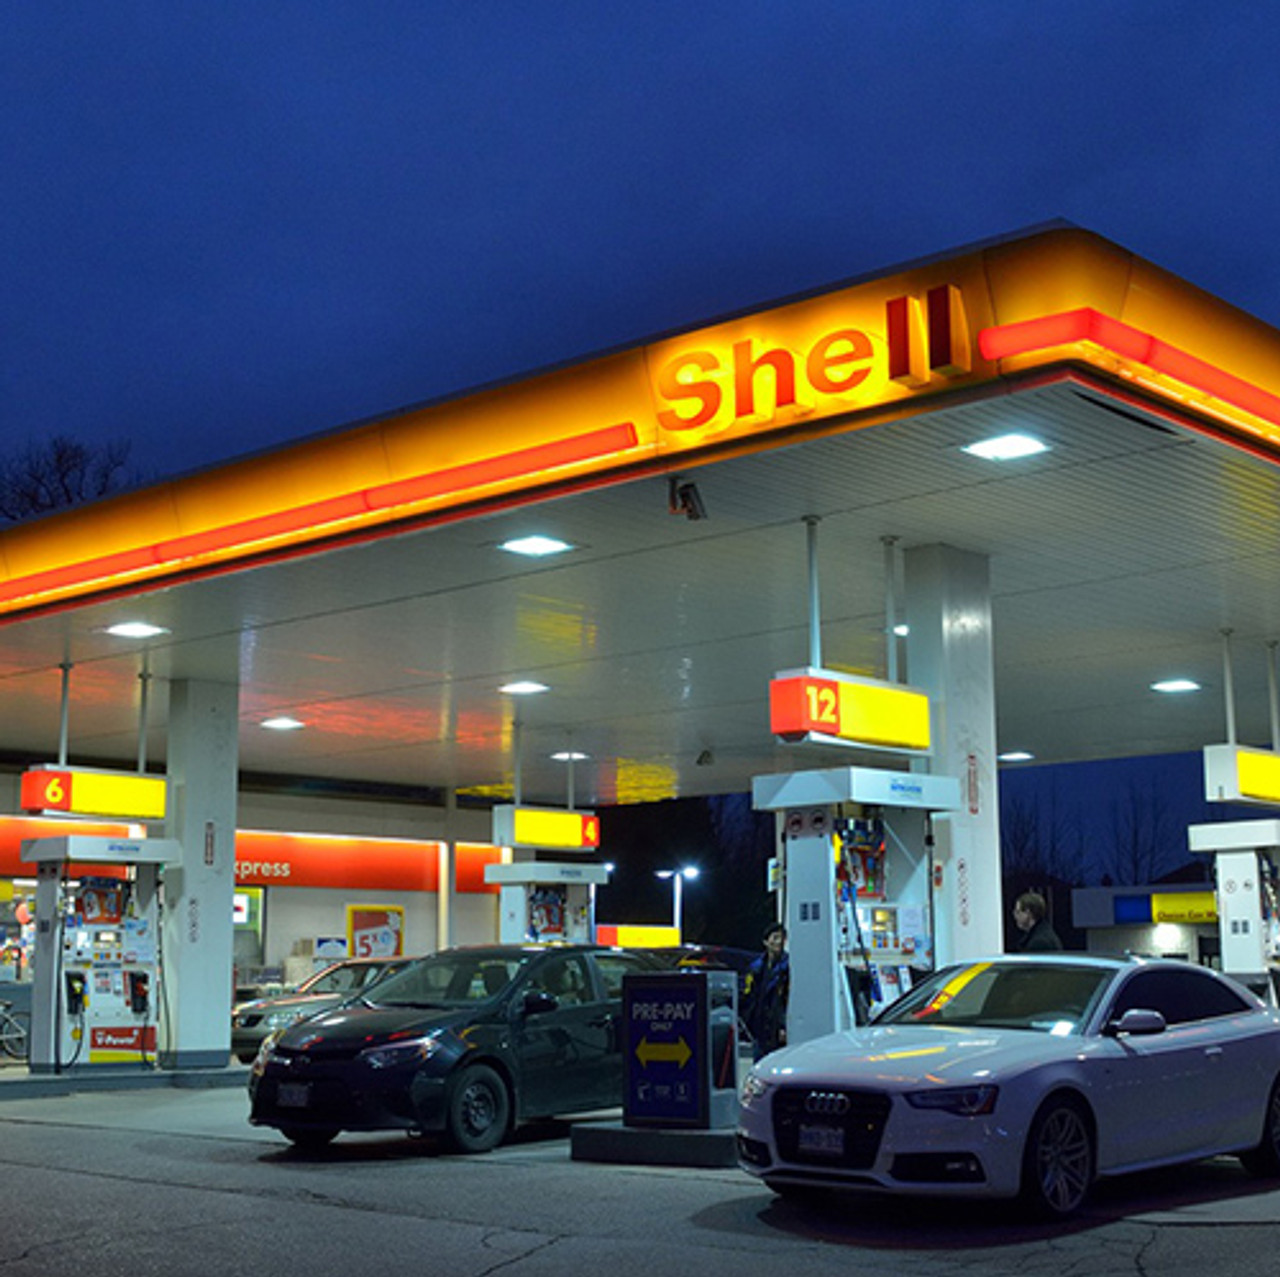 LED Canopy Light, perfect for parking garages and gas stations.